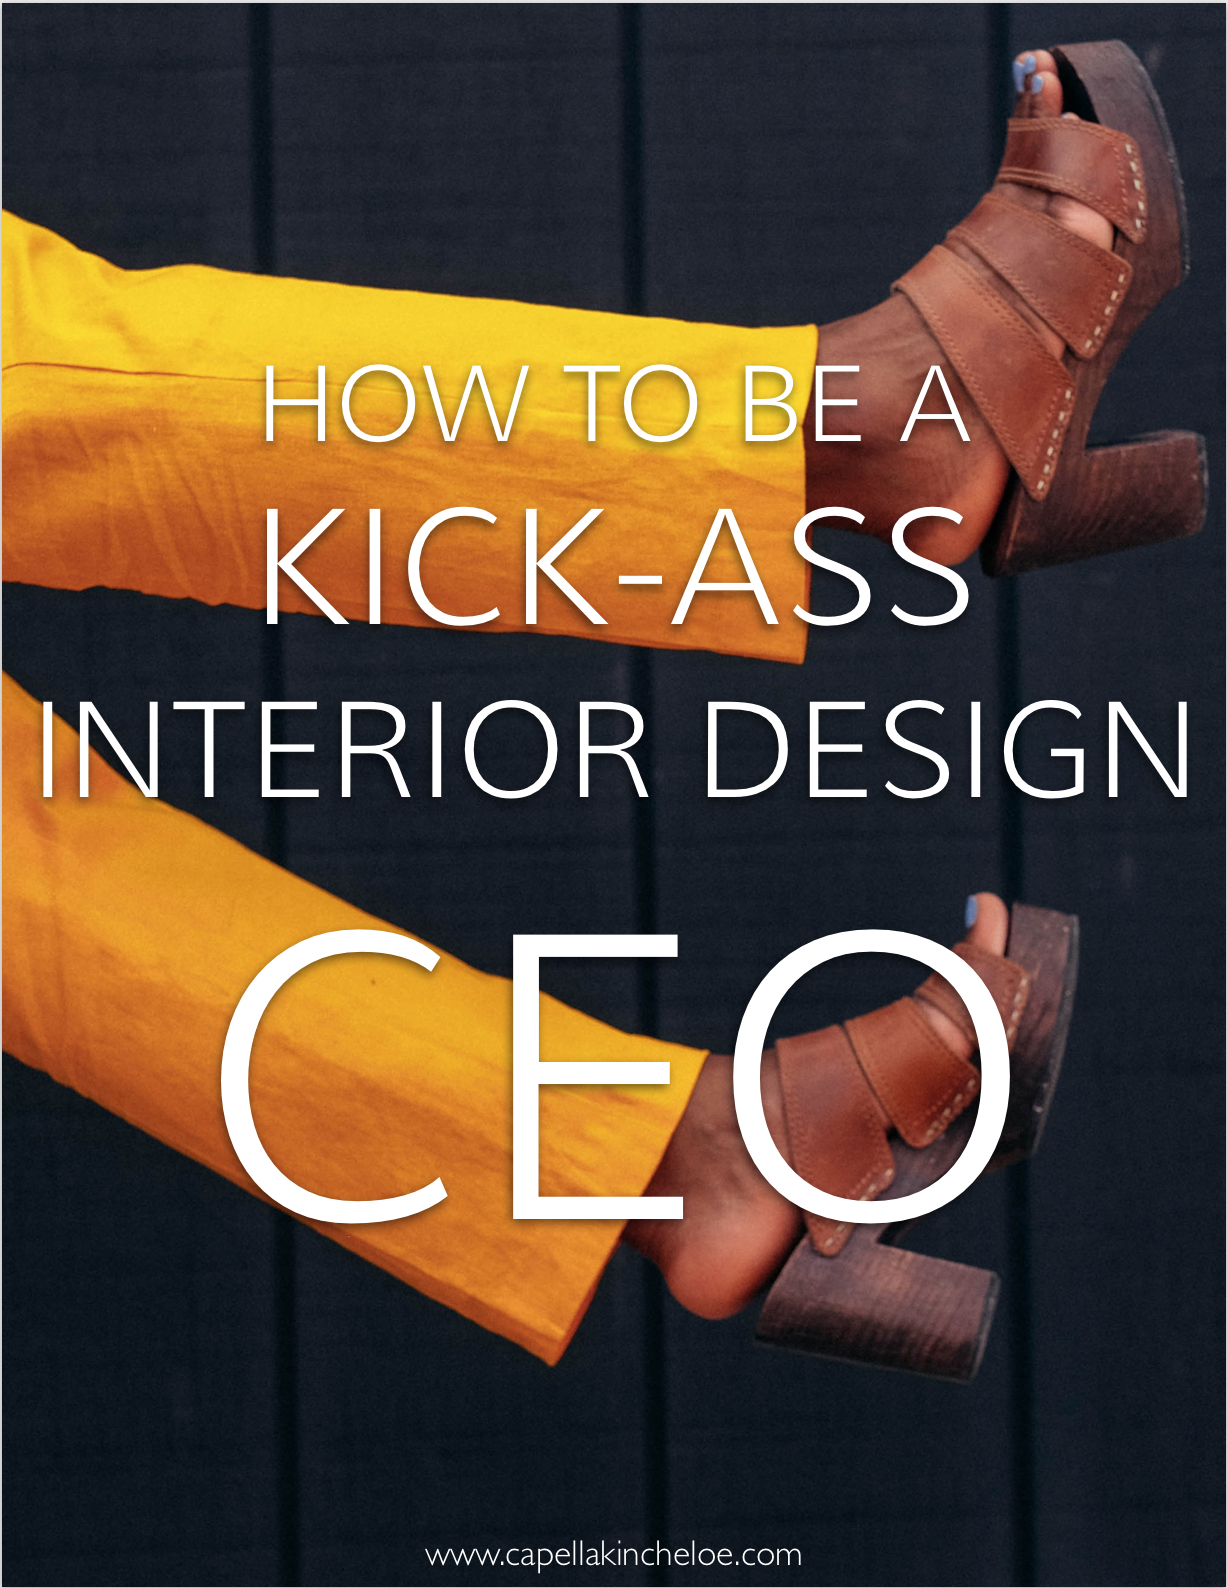 How to be a kick ass interior design ceo business - What do you learn in interior design school ...